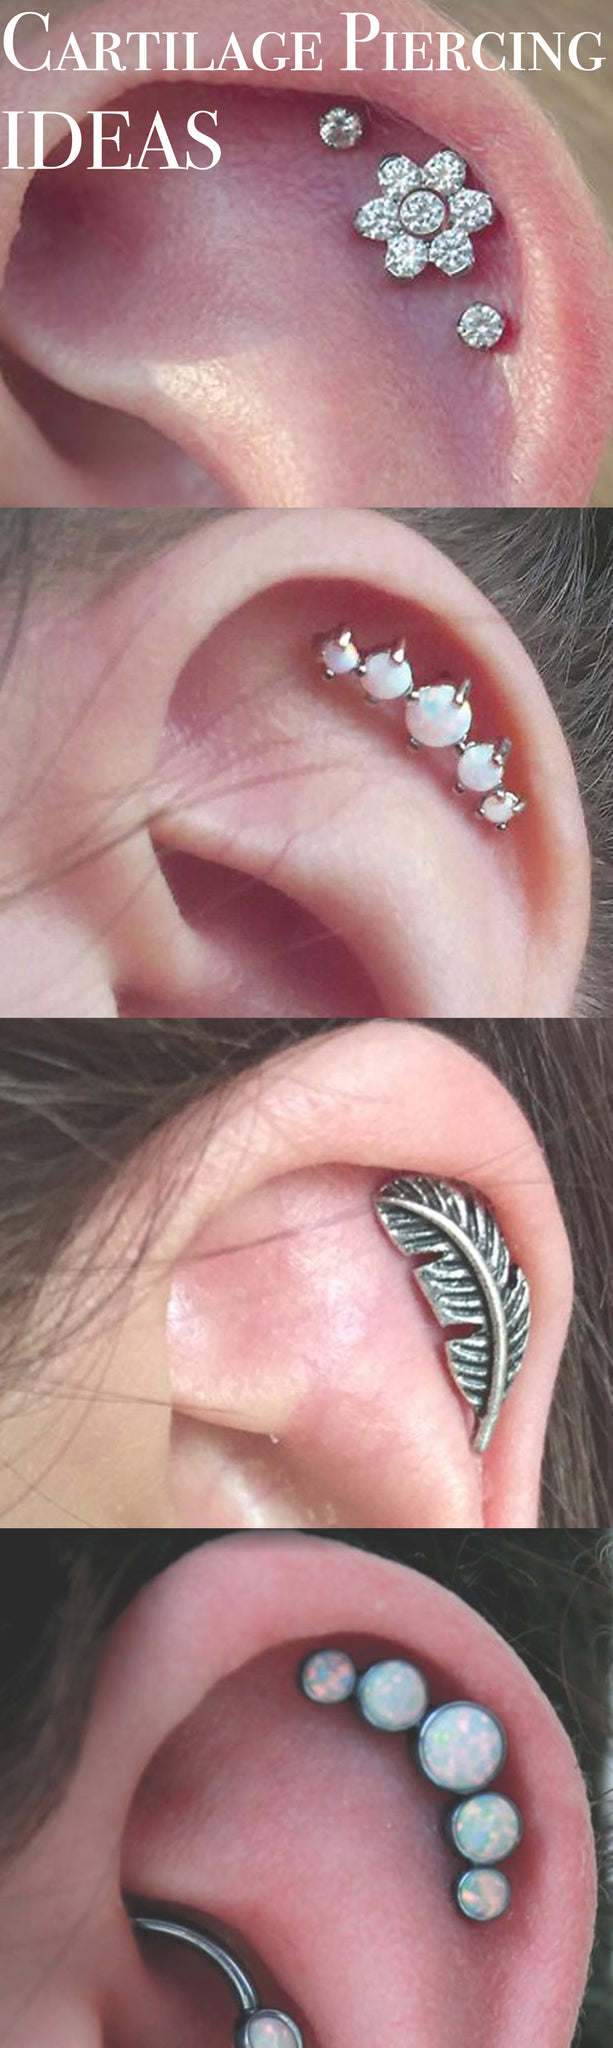 Ear Piercing Ideas for Cartilage - One Double Opal Gold Hoops Ring - Leaf Jewelry - Flower Stud - MyBodiArt.com